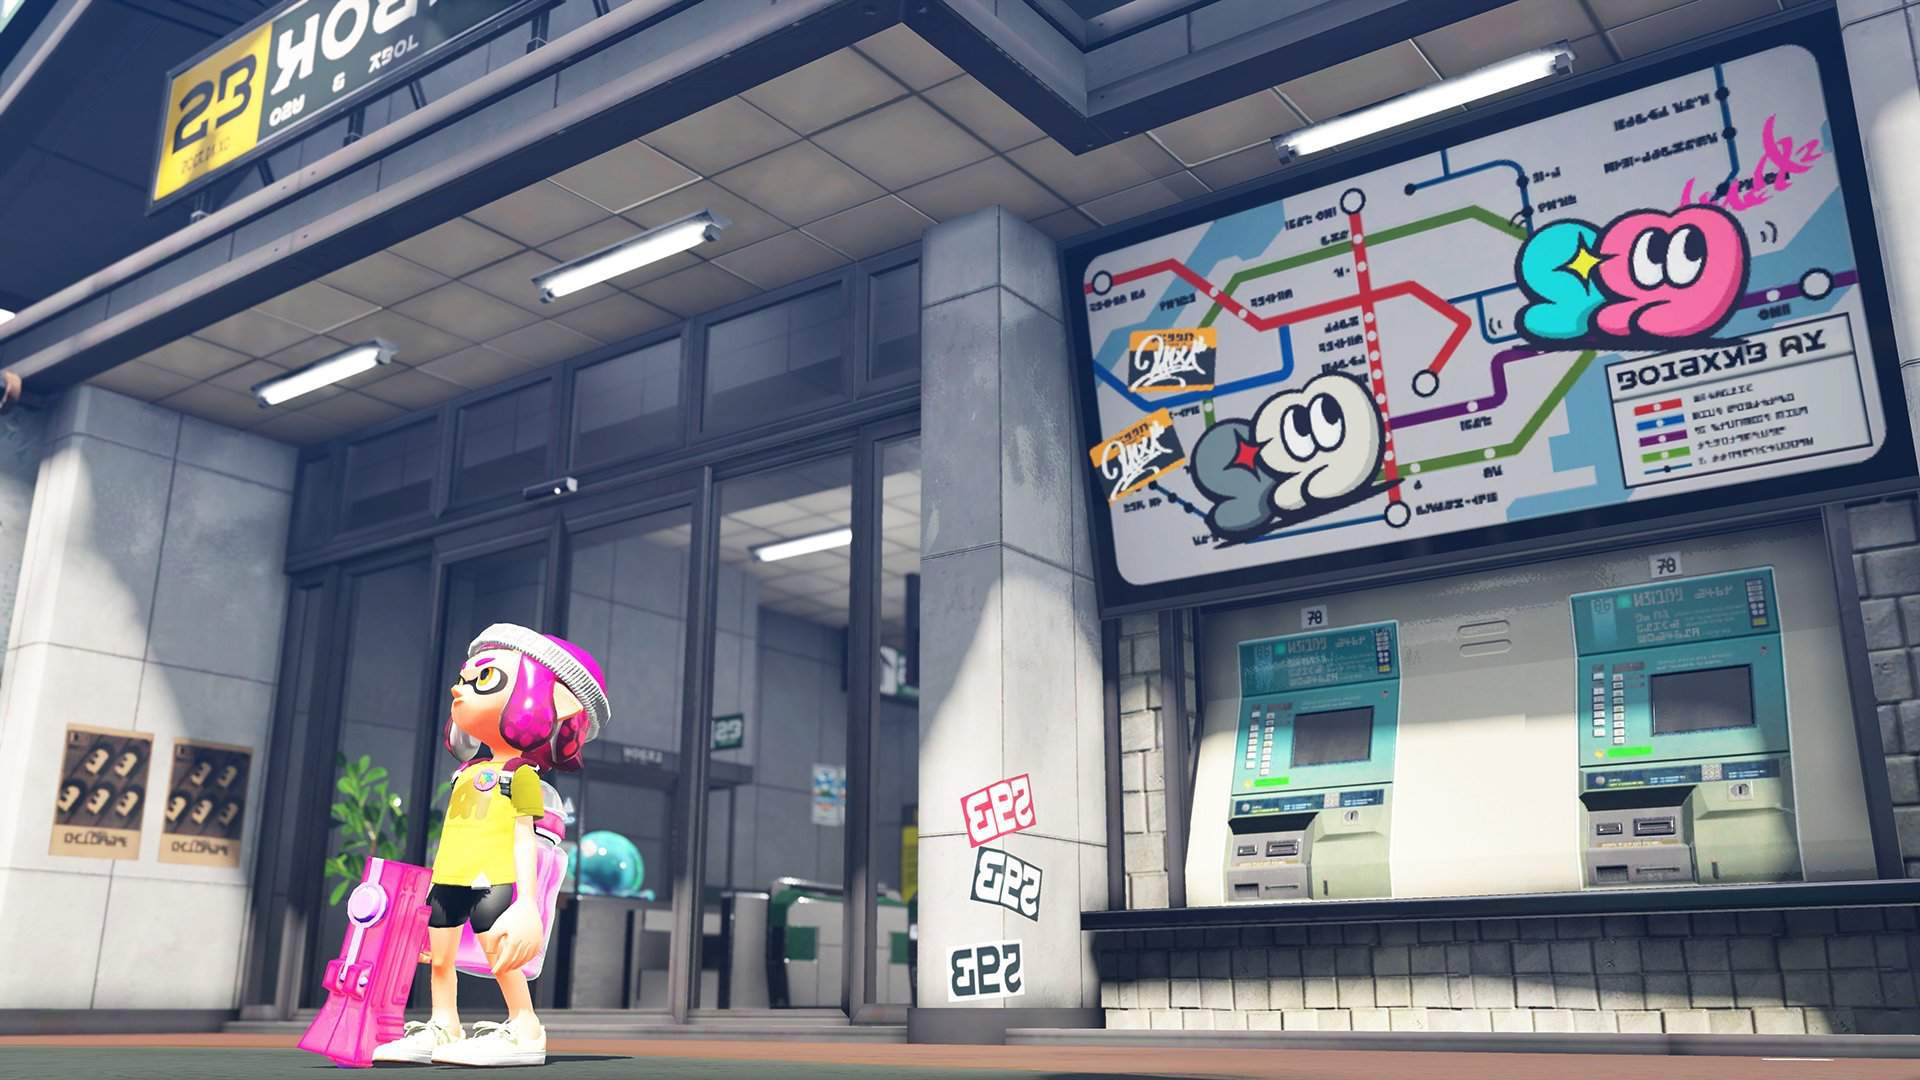 A new inkling steps outside of a city building